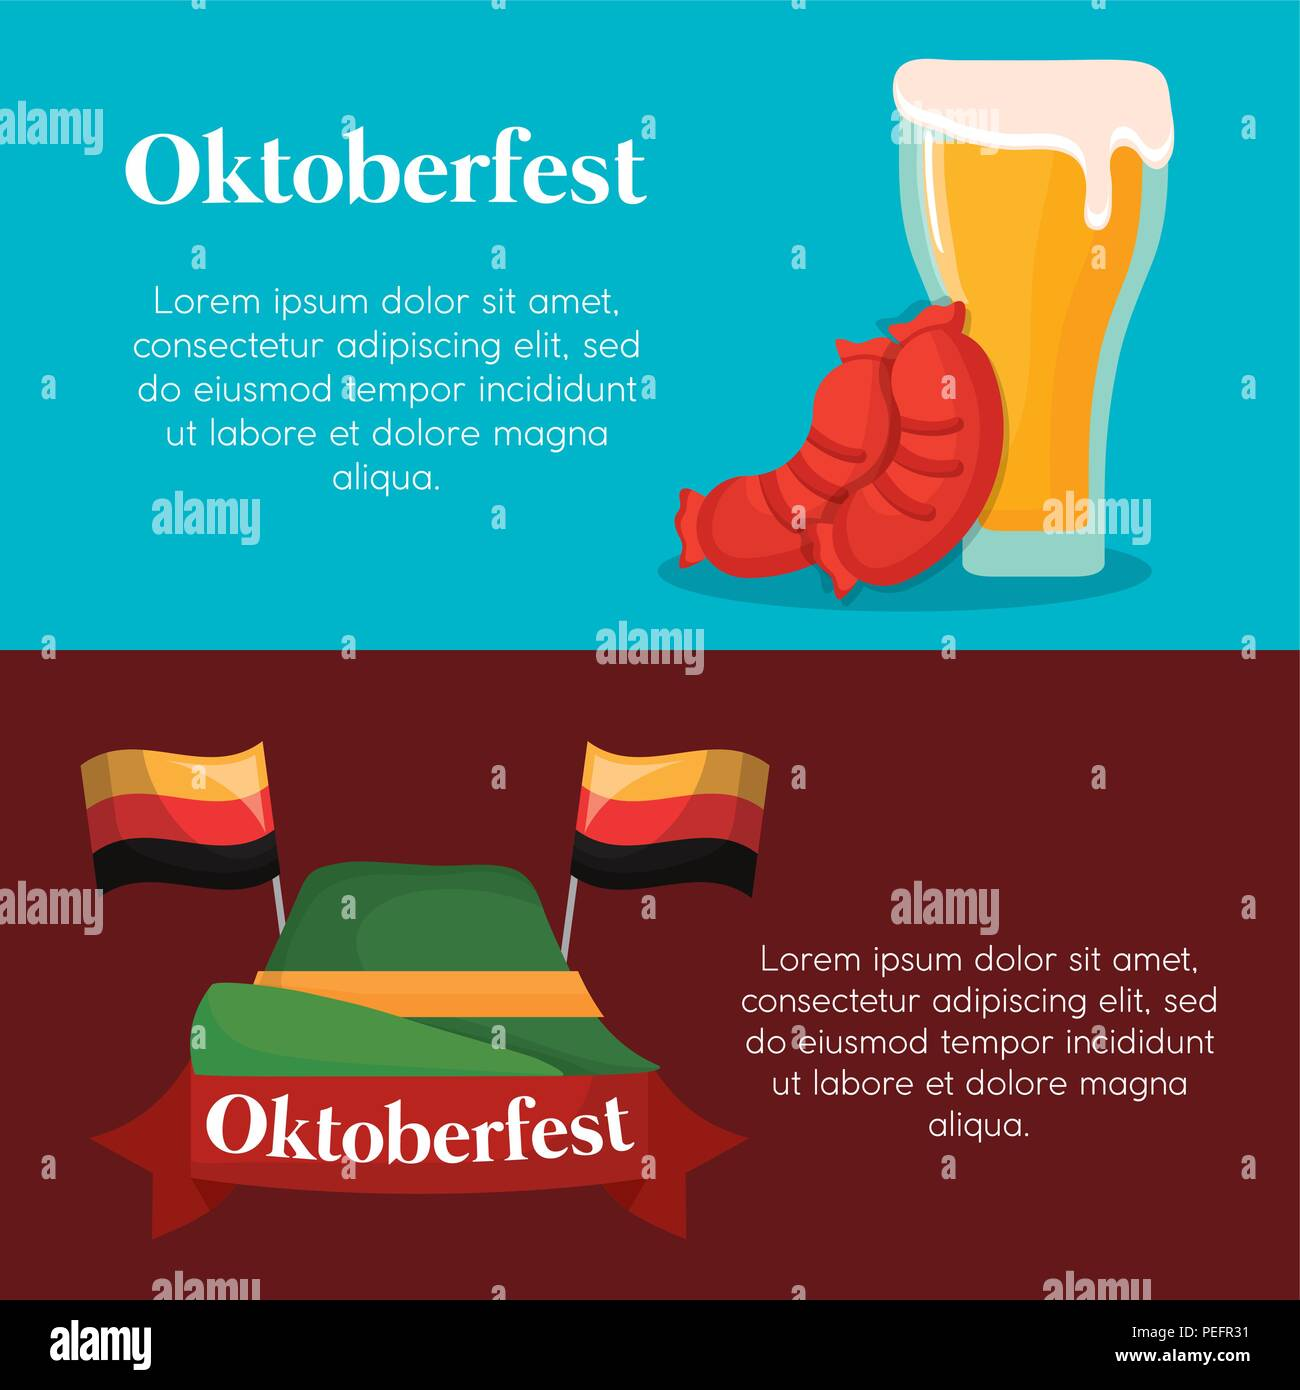 infographic of oktoberfest concept with beers, sausage and alpine hat icon, colorful design. vector illustration - Stock Image